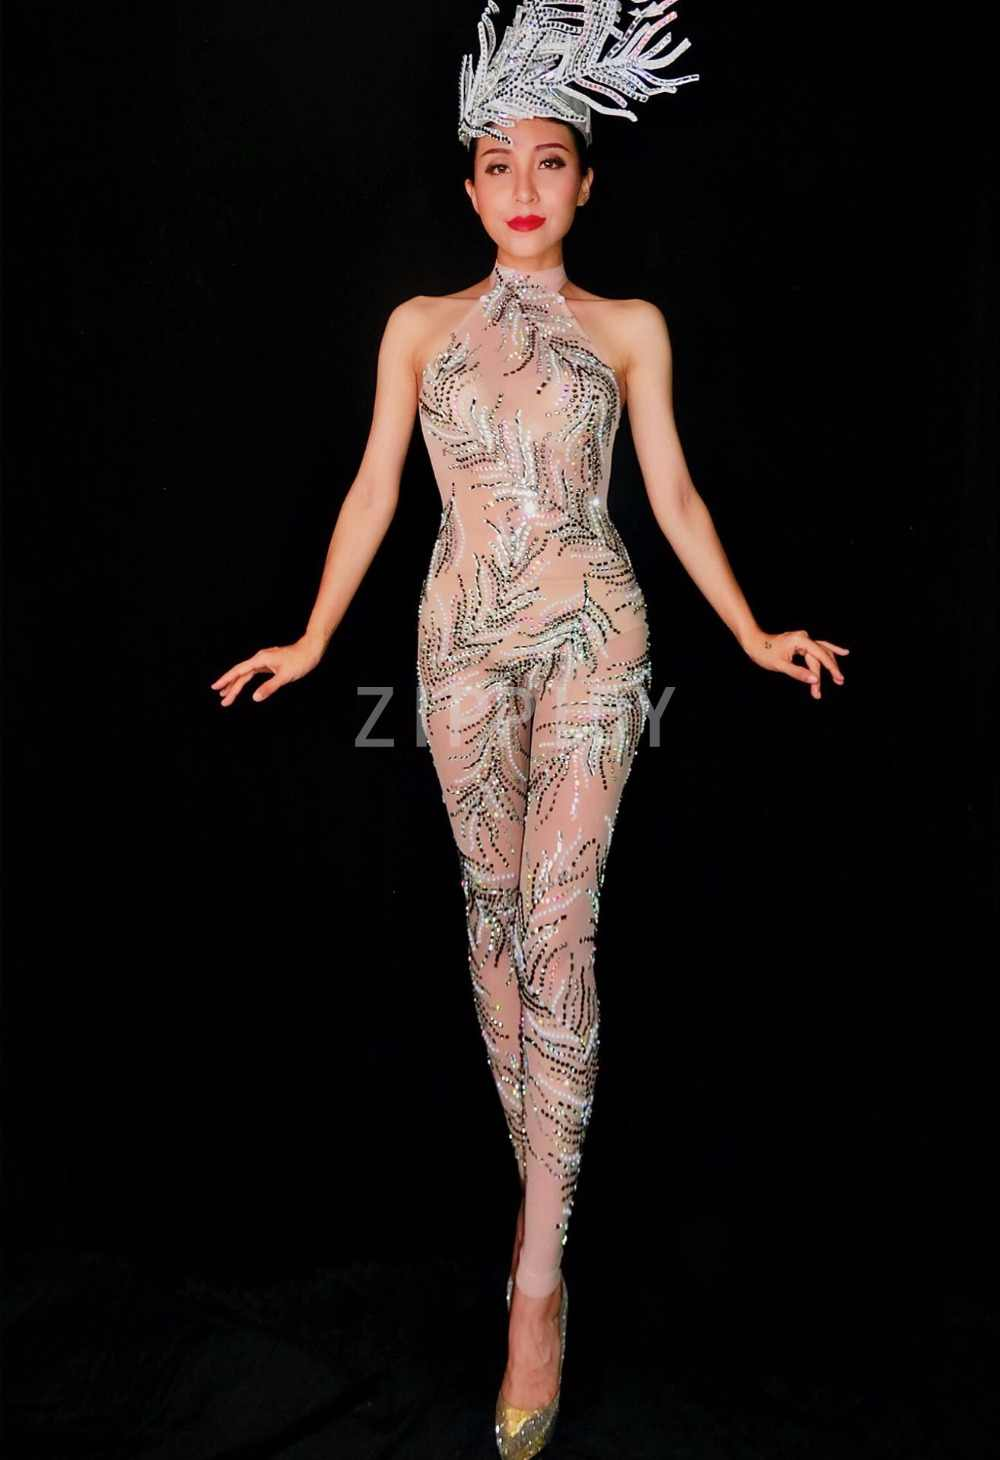 5a5a917ffcb5 ... New Style Rhinestones See Through Jumpsuit Women's Dance Party  Nightclub Outfit Female Singer Clothes Stones Pattern ...